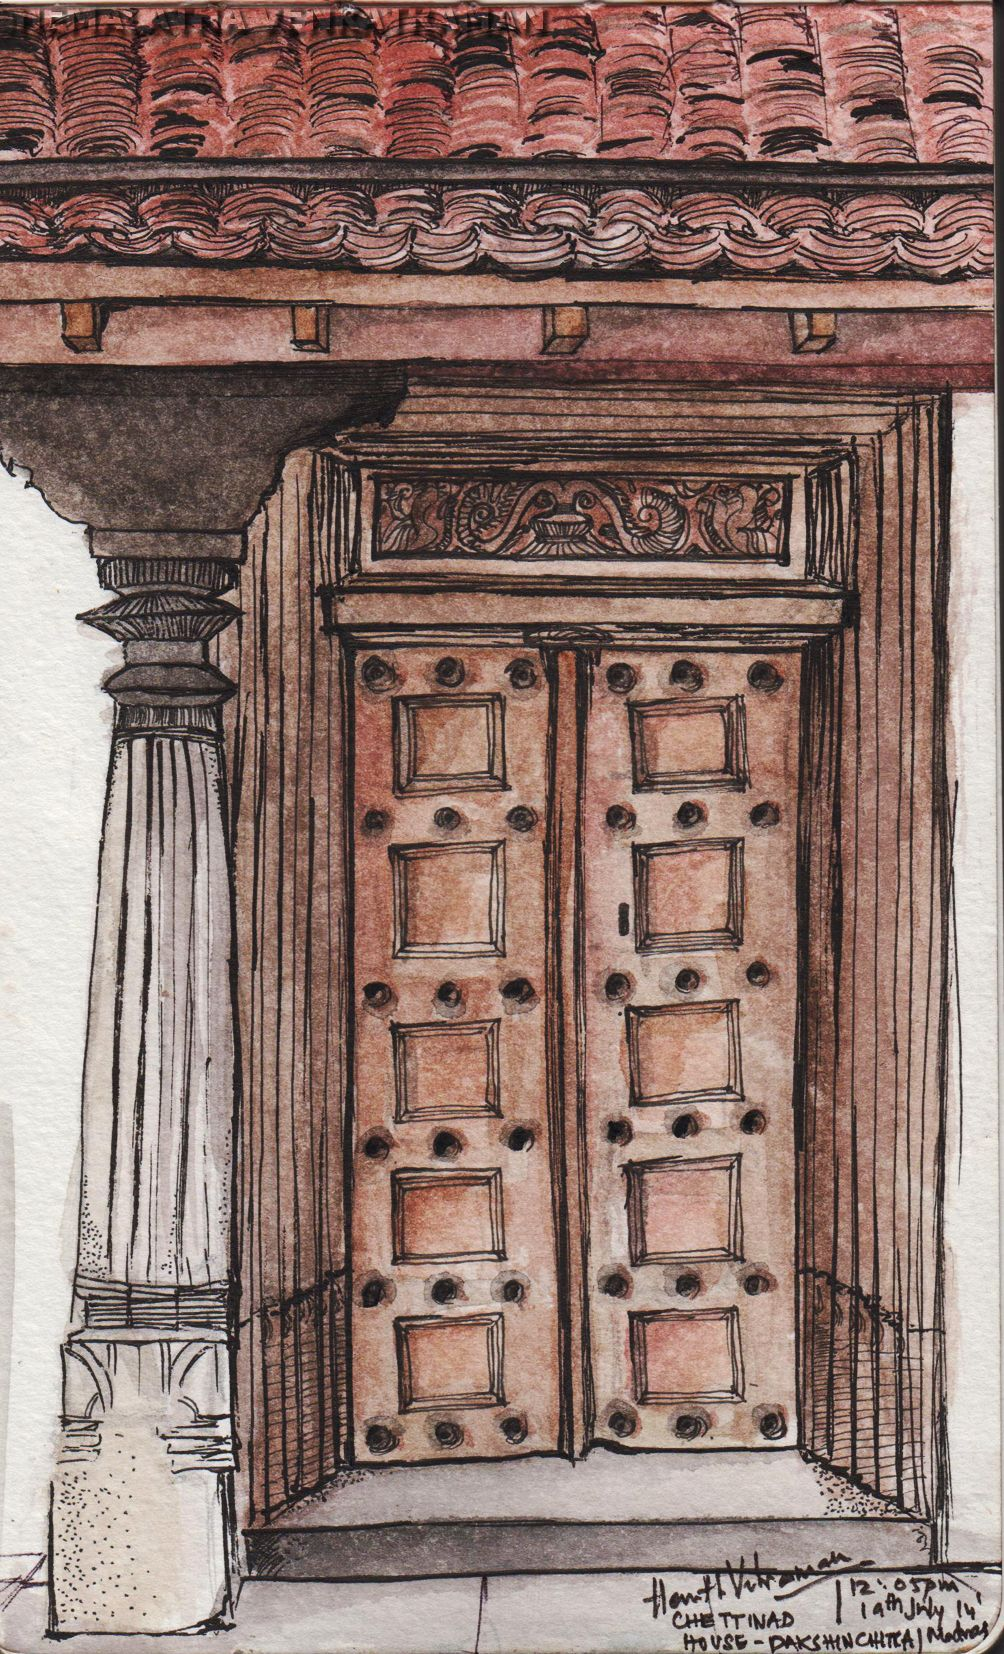 Kitchen cabinet doors in bangalore first time in india architect - The Door Chettinad House Dakshin Chitra Madras India Watercolours And Ink On